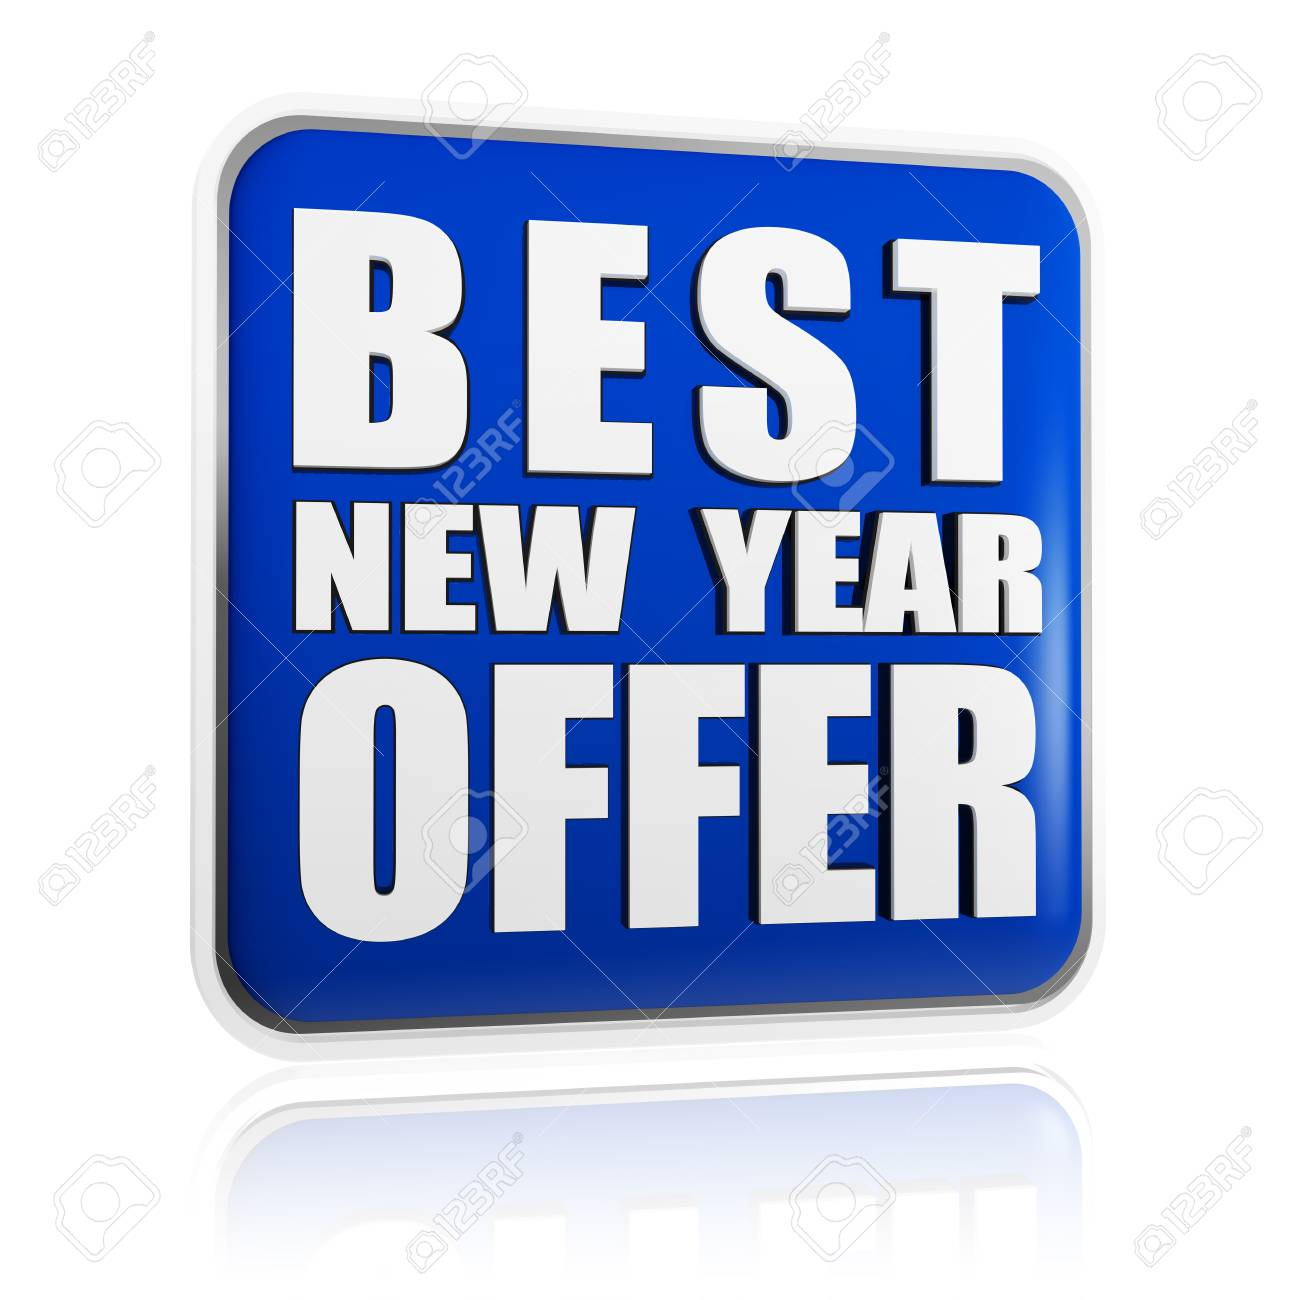 best New Year offer 3d blue banner with white text, business concept Stock Photo - 16844839